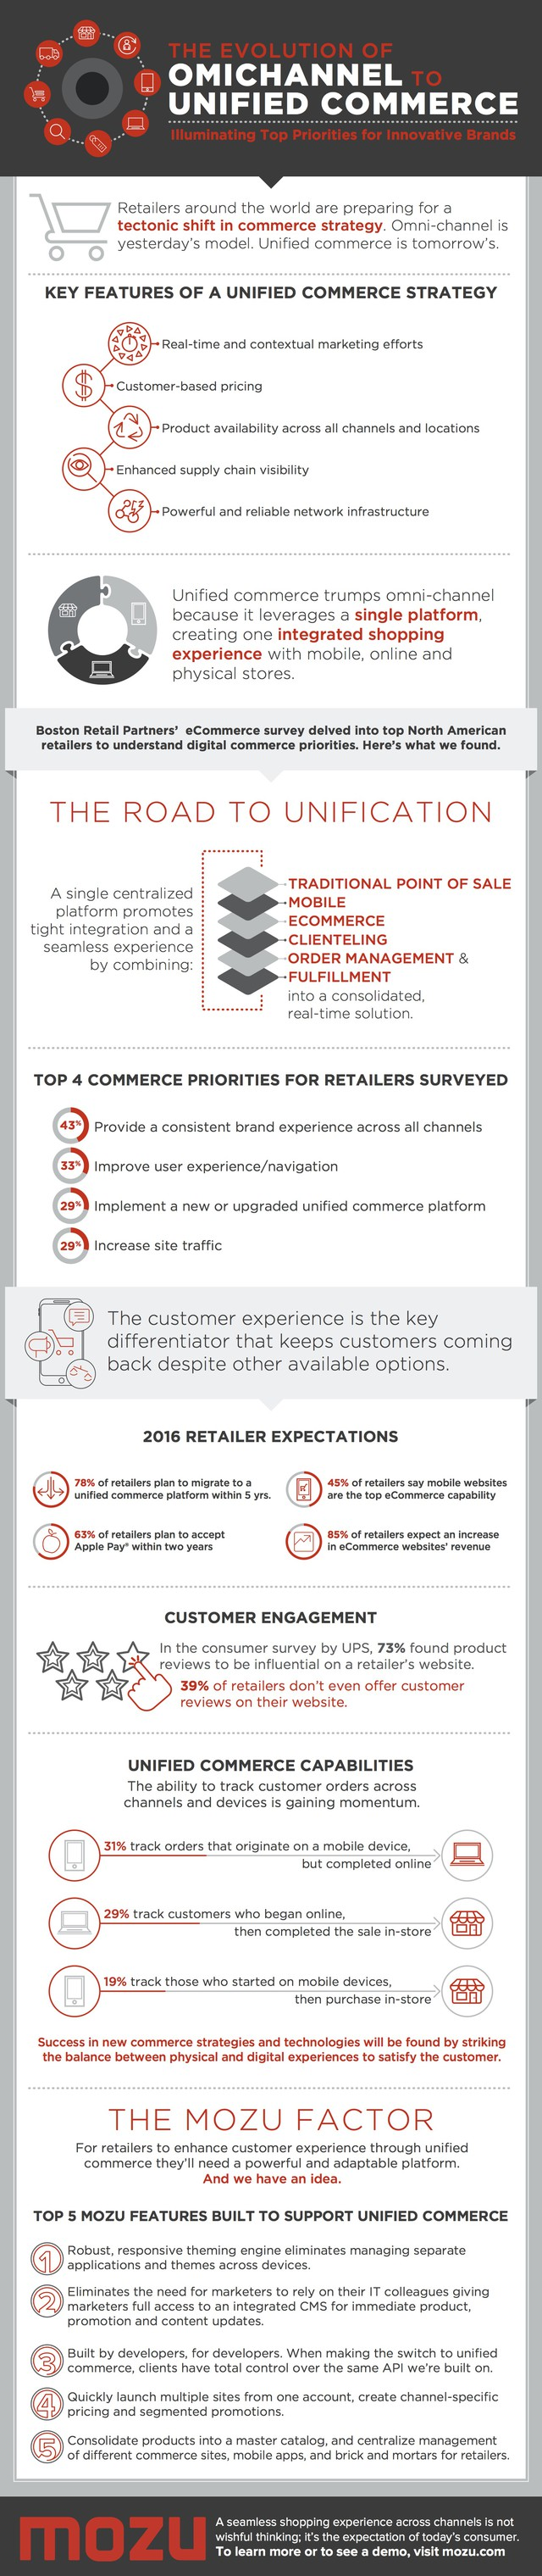 Unified commerce infographic by Mozu